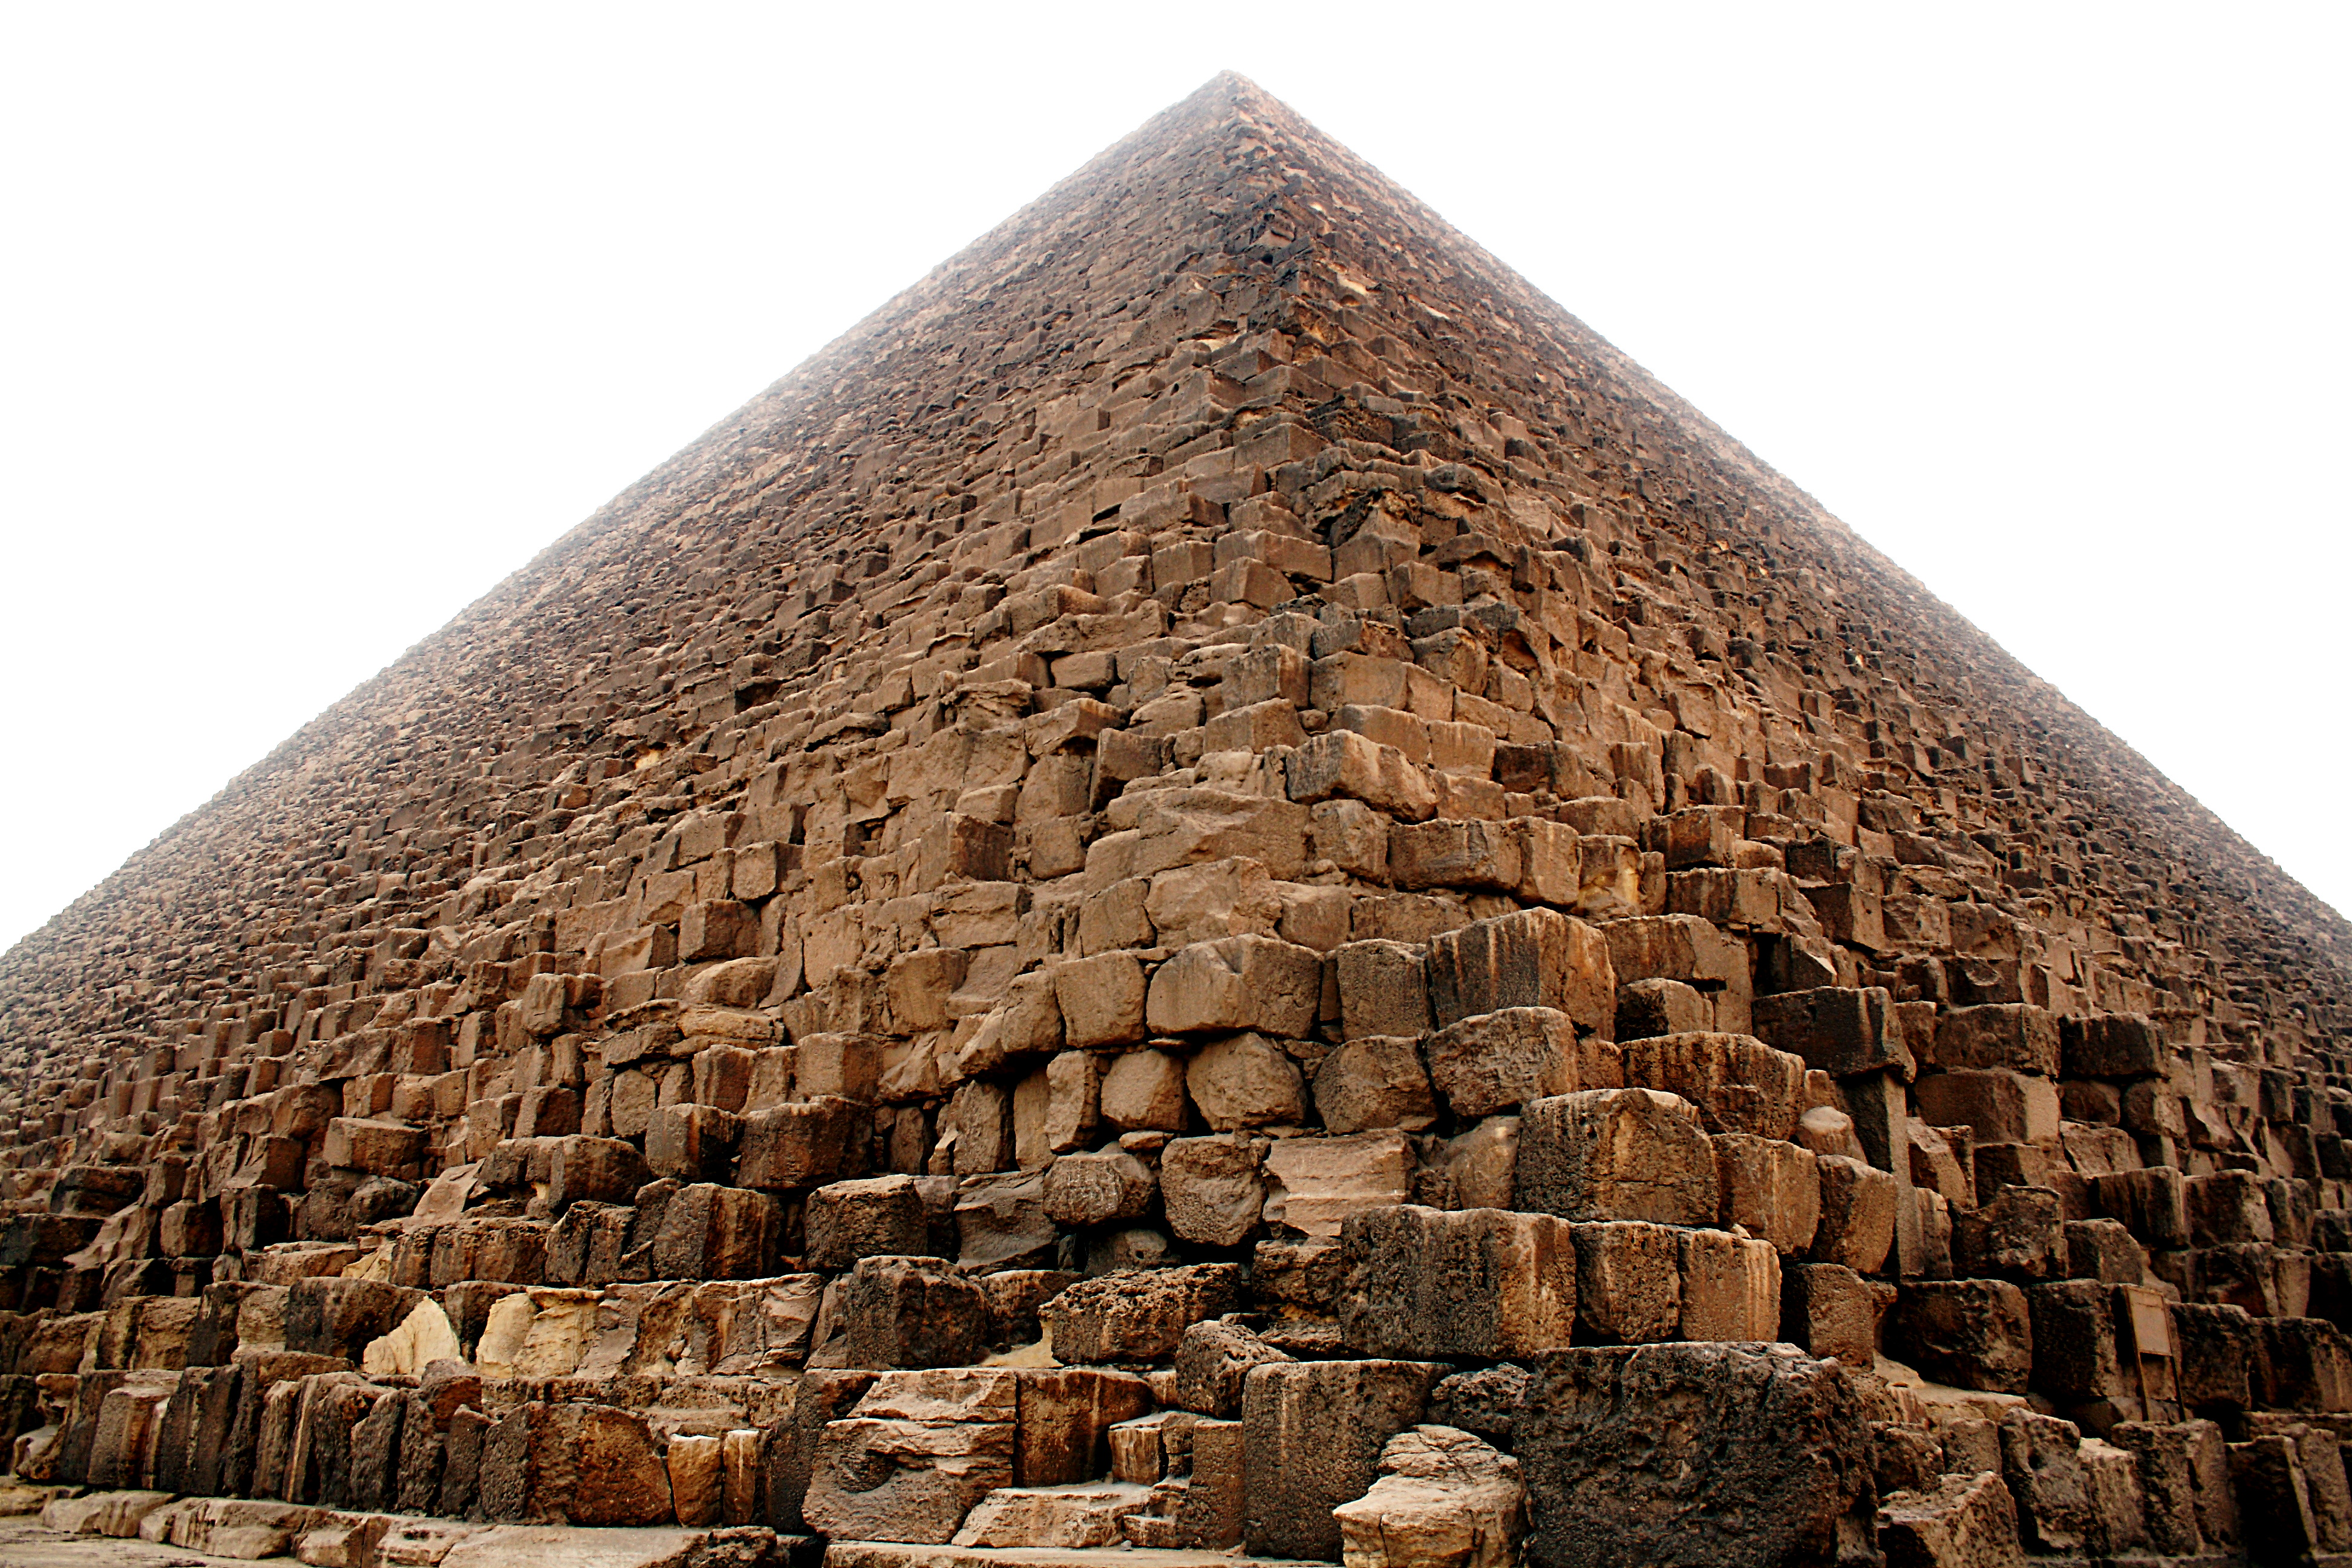 Pyramide Cheops